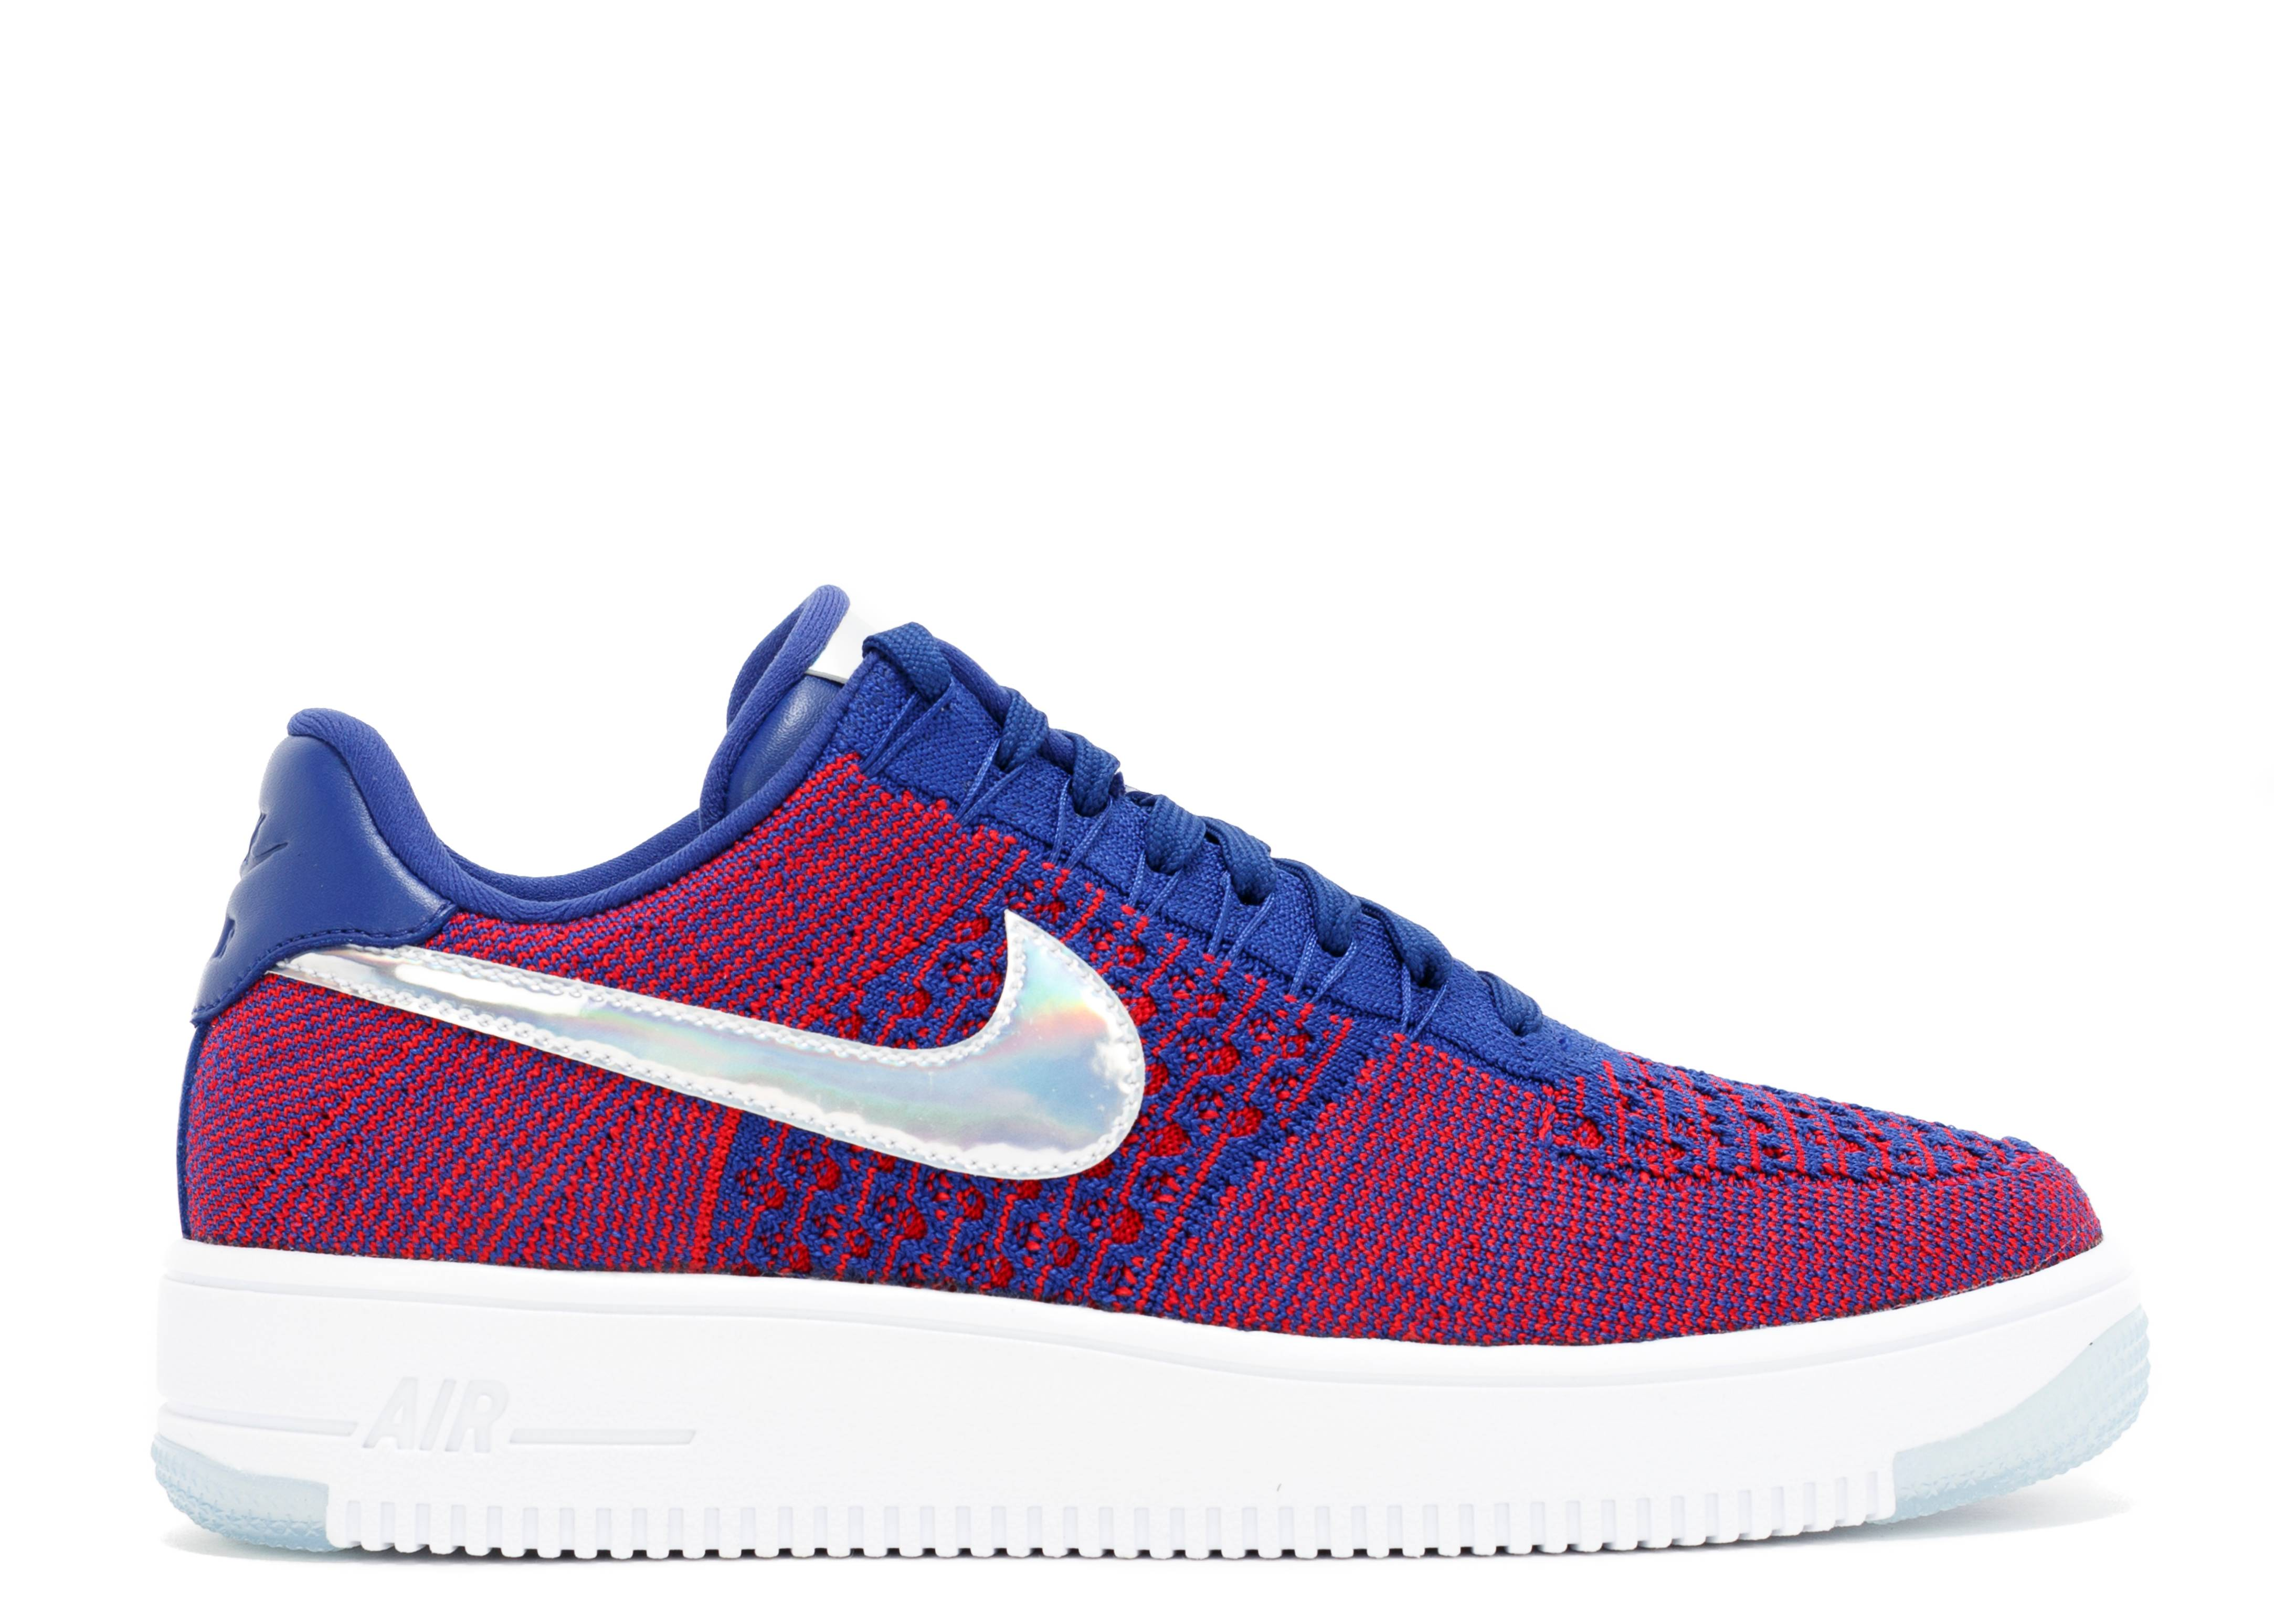 men's nike air force 1 flyknit multicolor racer 2016 olympics